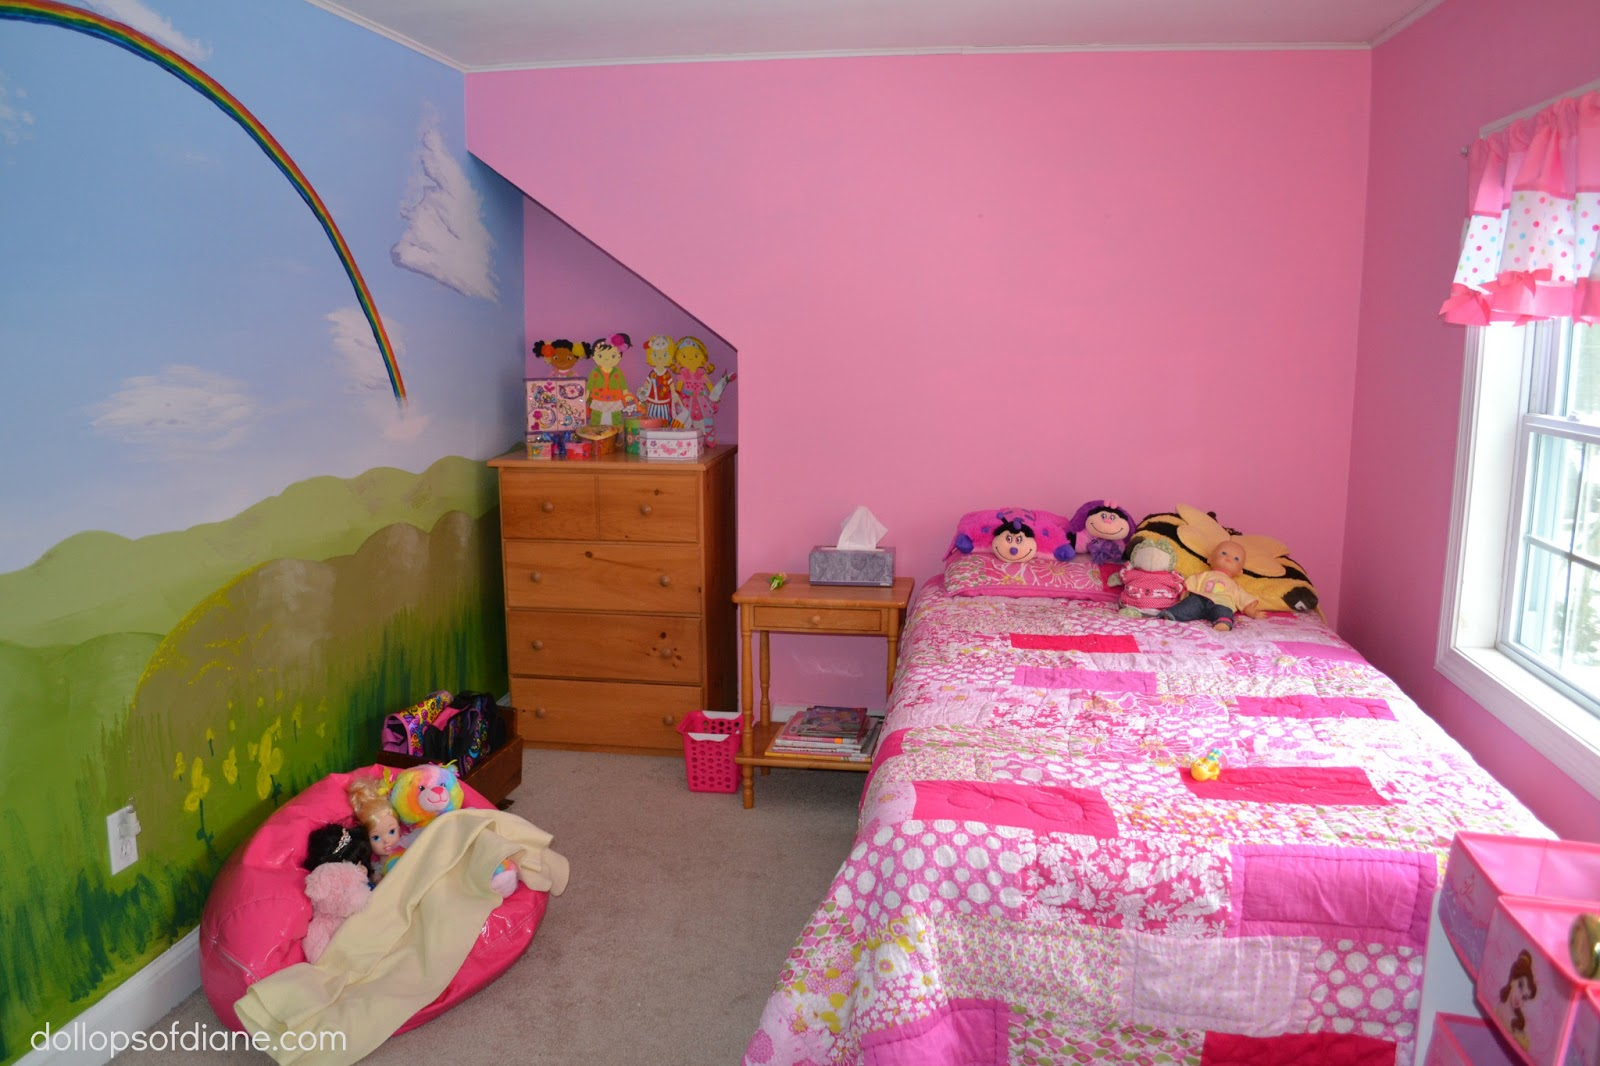 Dollops Of Diane The Perfect Room For A Five Year Old Girl